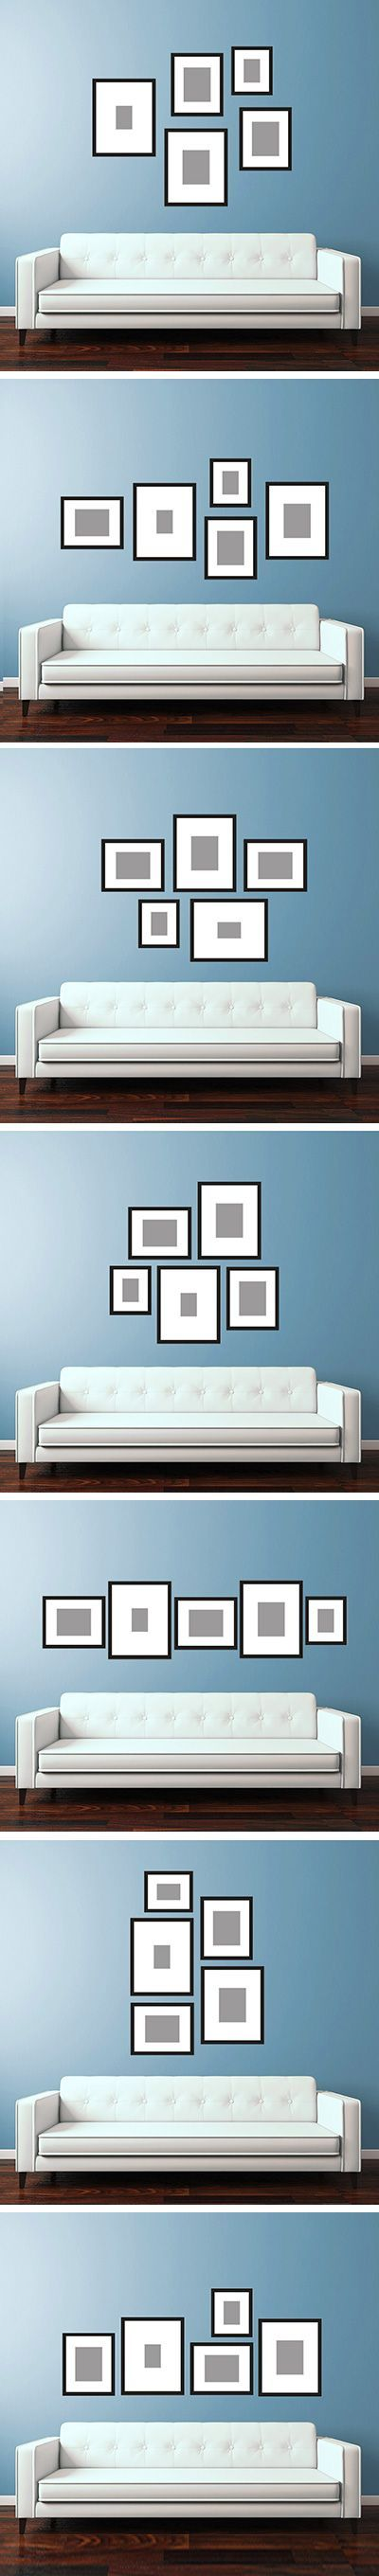 picture wall layouts to hang above your sofa | Home decor ...